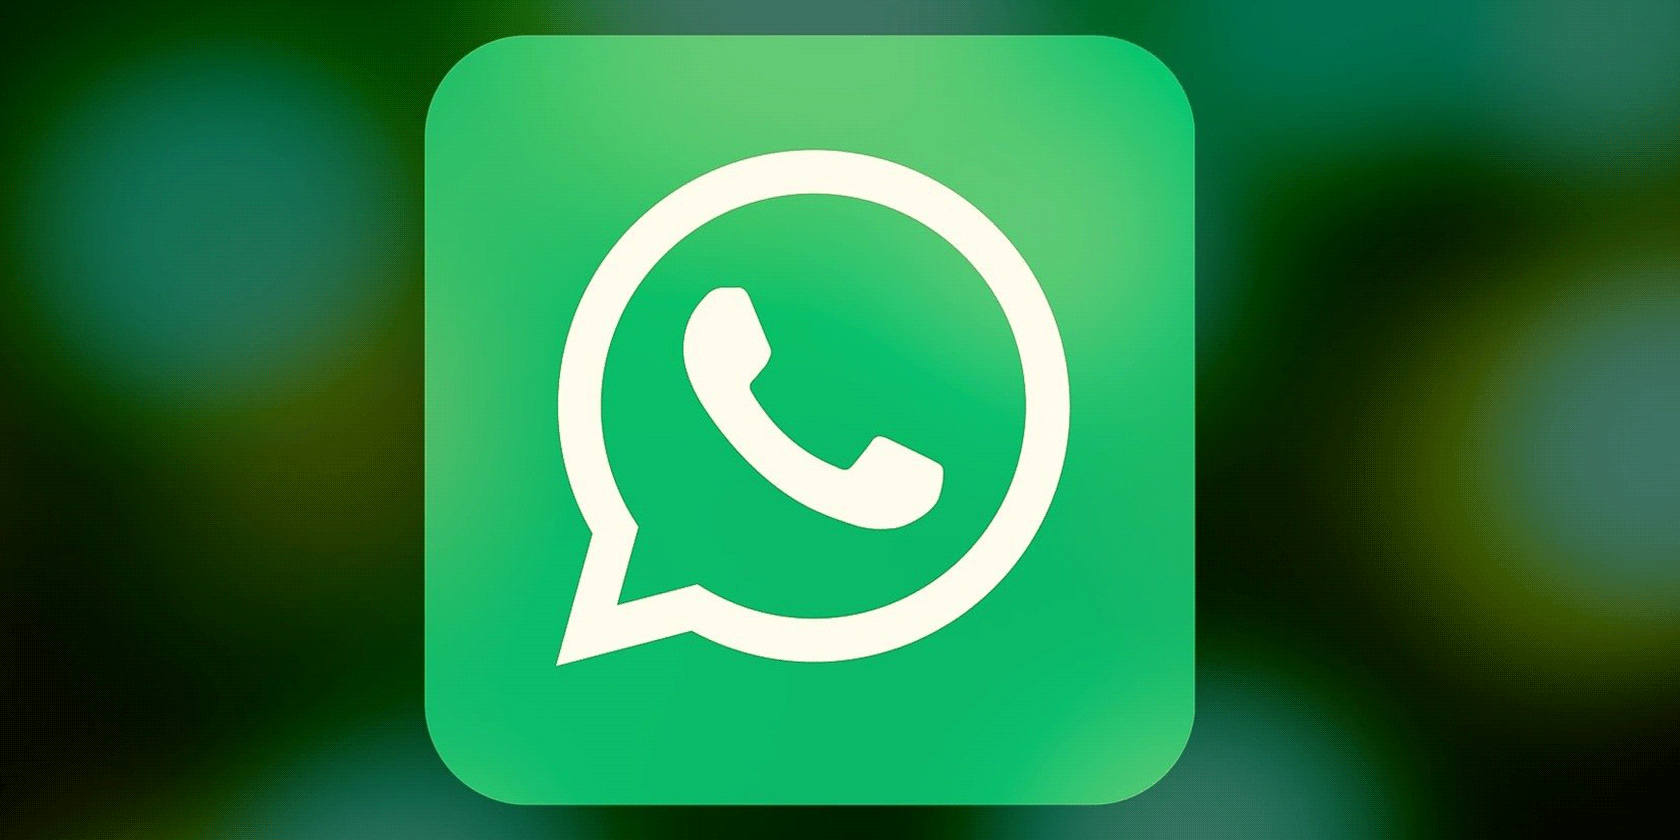 WhatsApp for iPhone Now Requires All Users to Be Running iOS 10 or Later